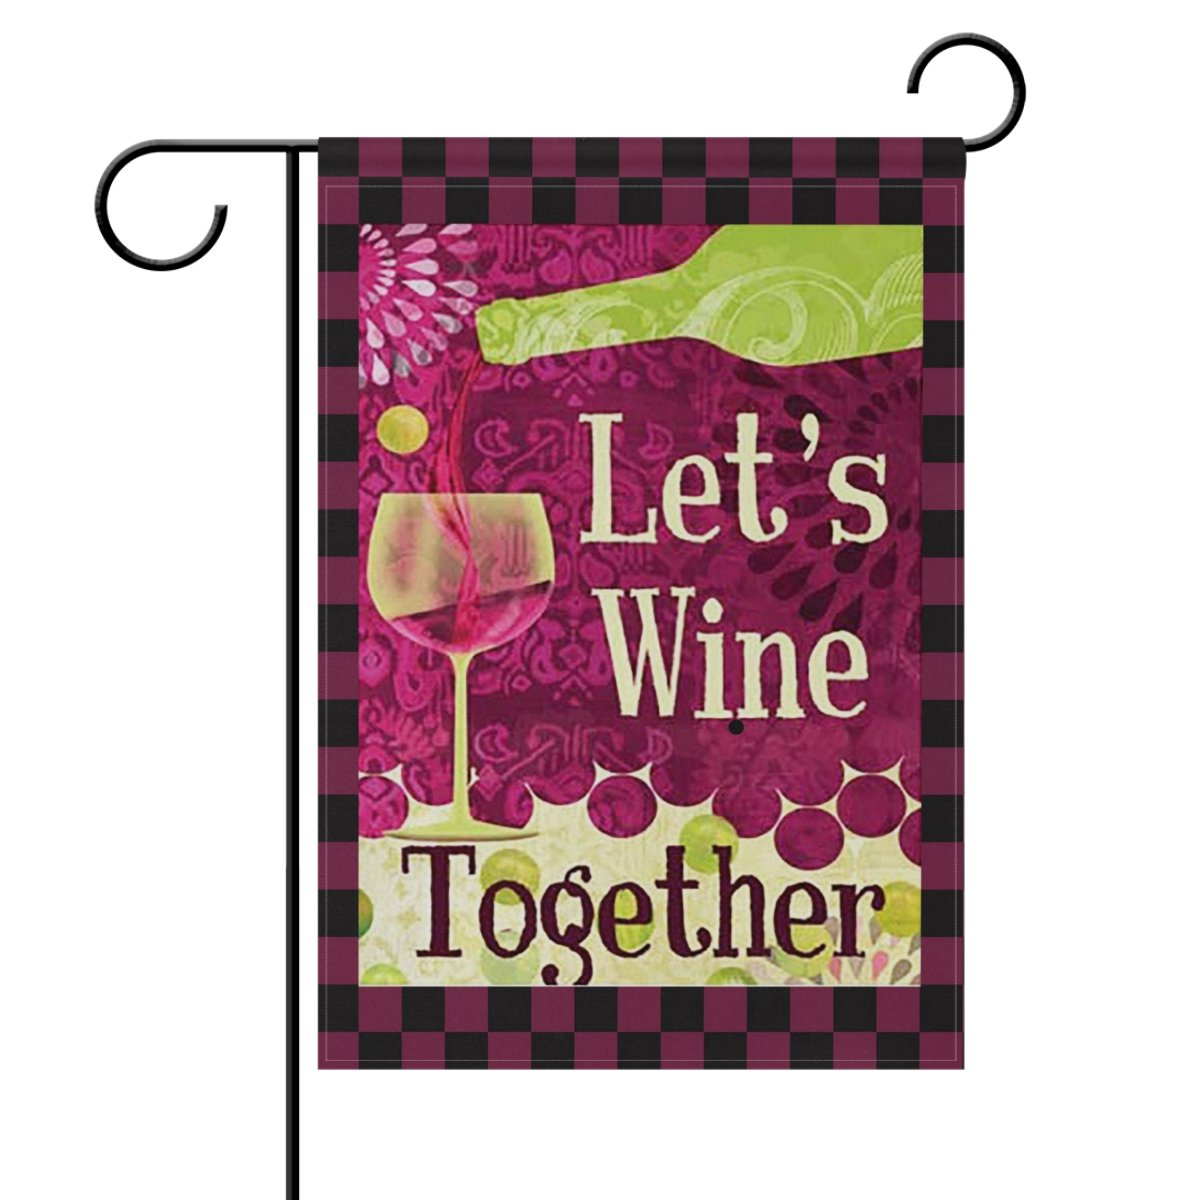 ShineSnow Wine A Bit Grapes Red Vino Country Drinks Small Double Sided Garden Yard Flag 12'' x 18'', Lets Wine Together Colorful Glass Bottle Decorative Garden Flag Banner for Outdoor Home Decor Party